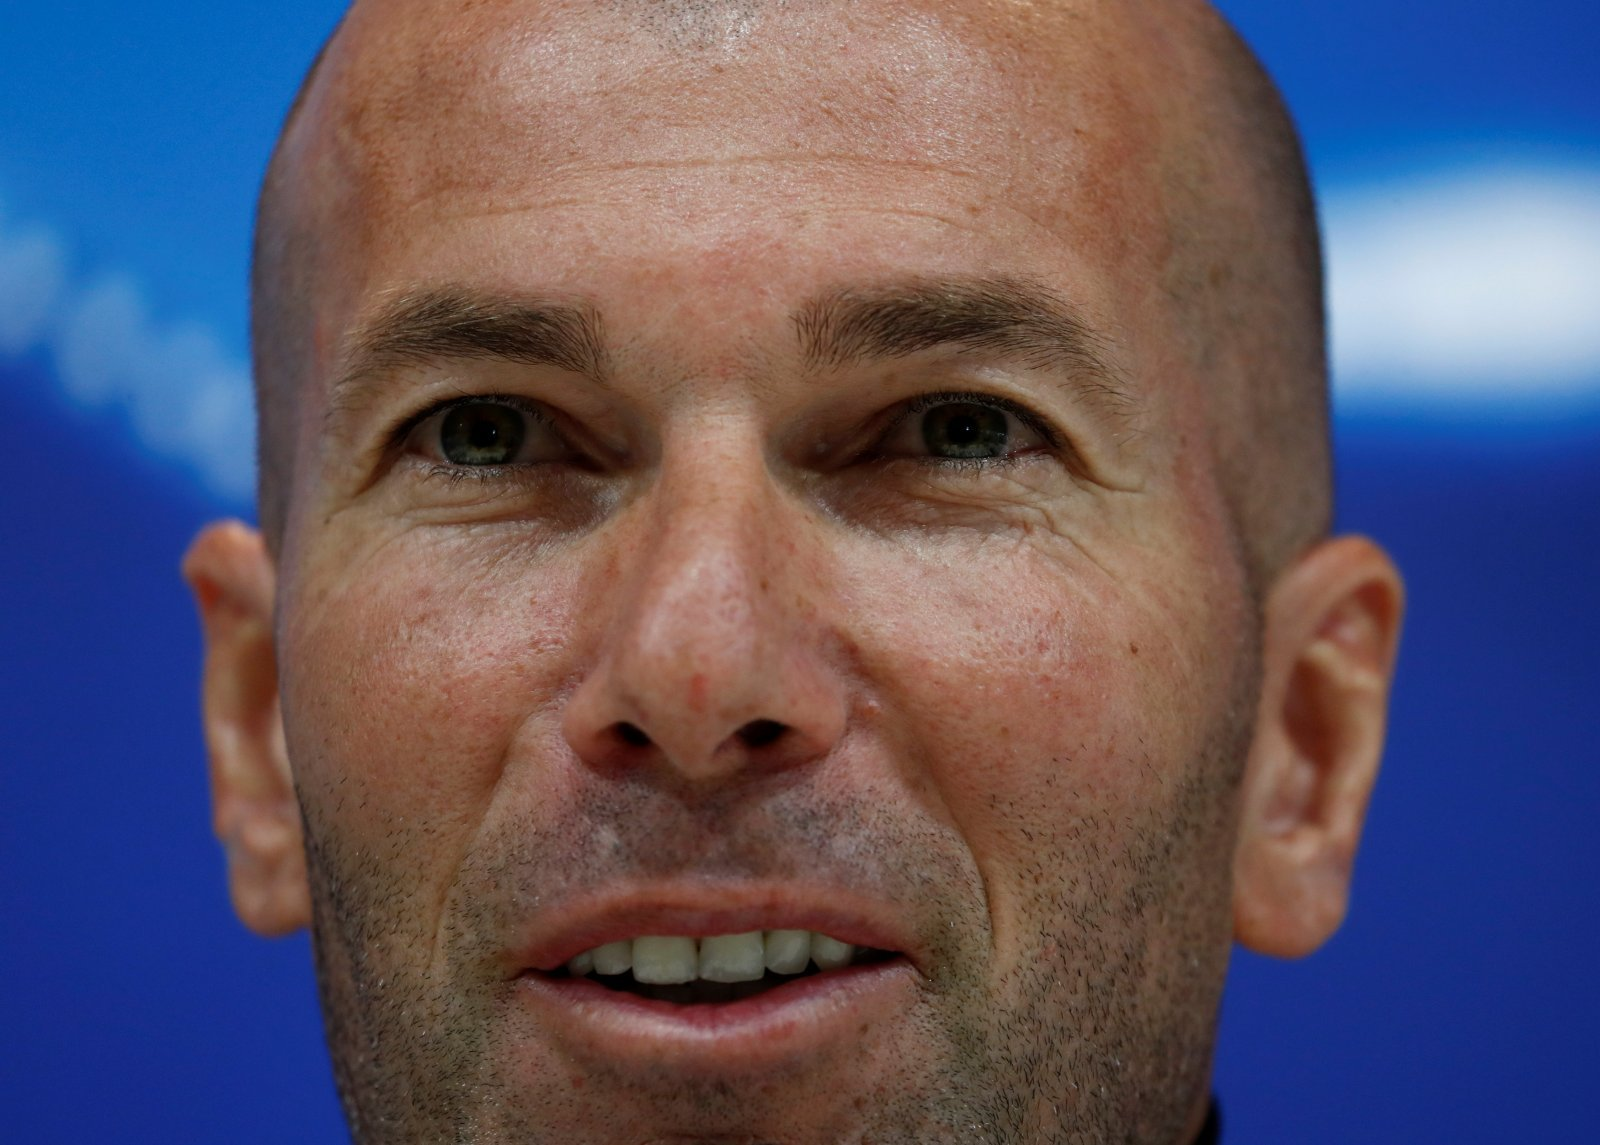 Missing out on Zinedine Zidane shouldn't be a big deal for Chelsea